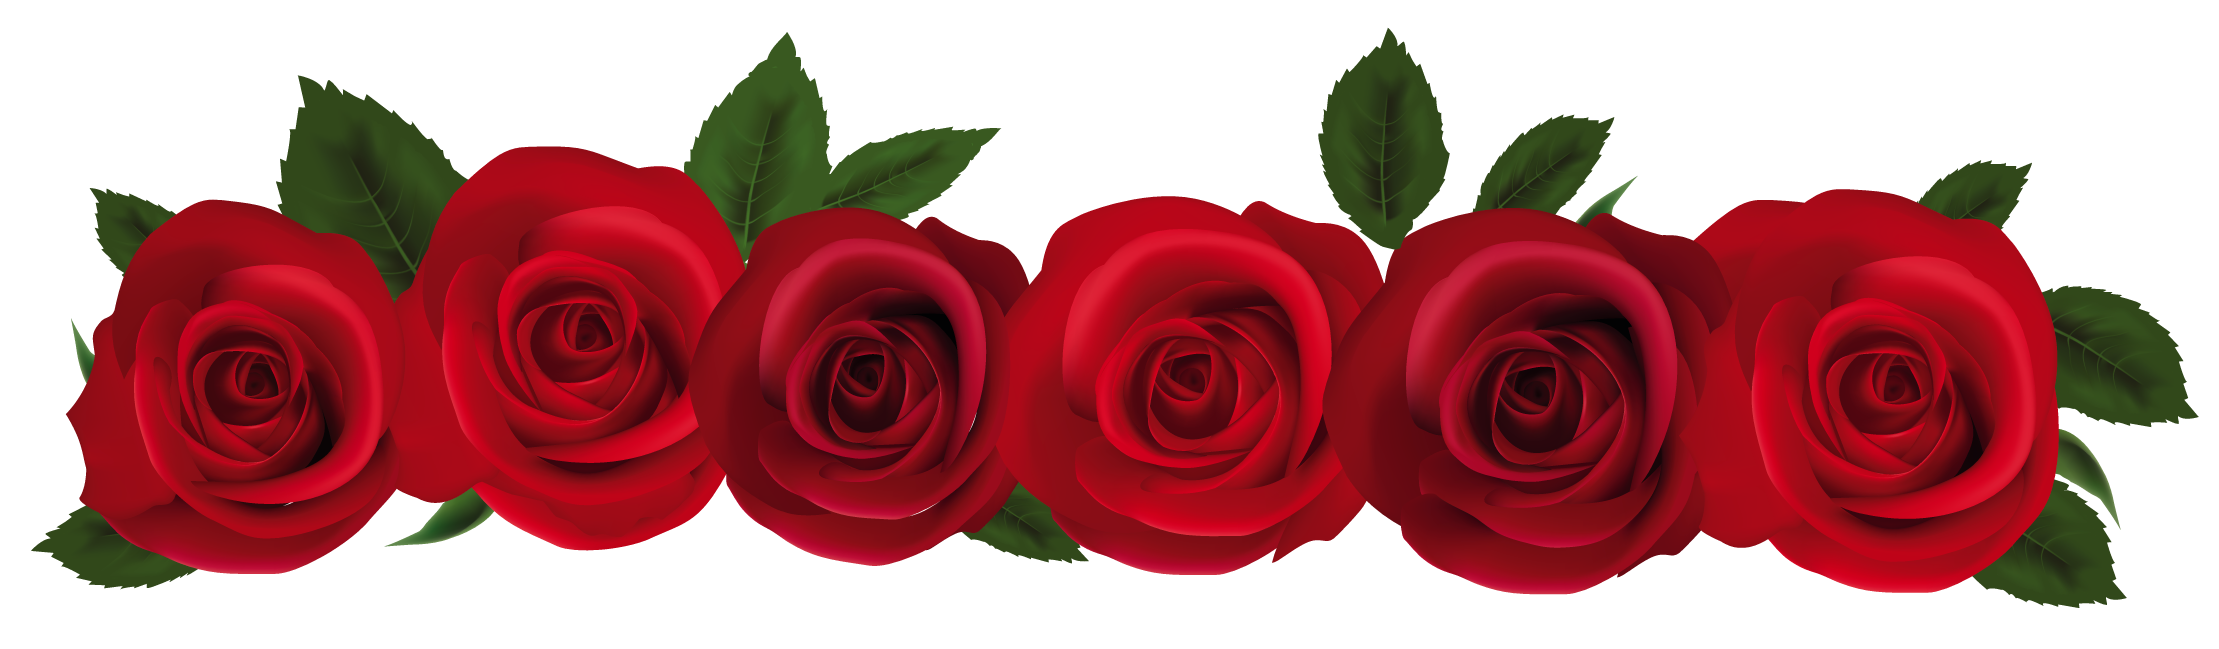 Rose thorns border png. A for mary alsworthy